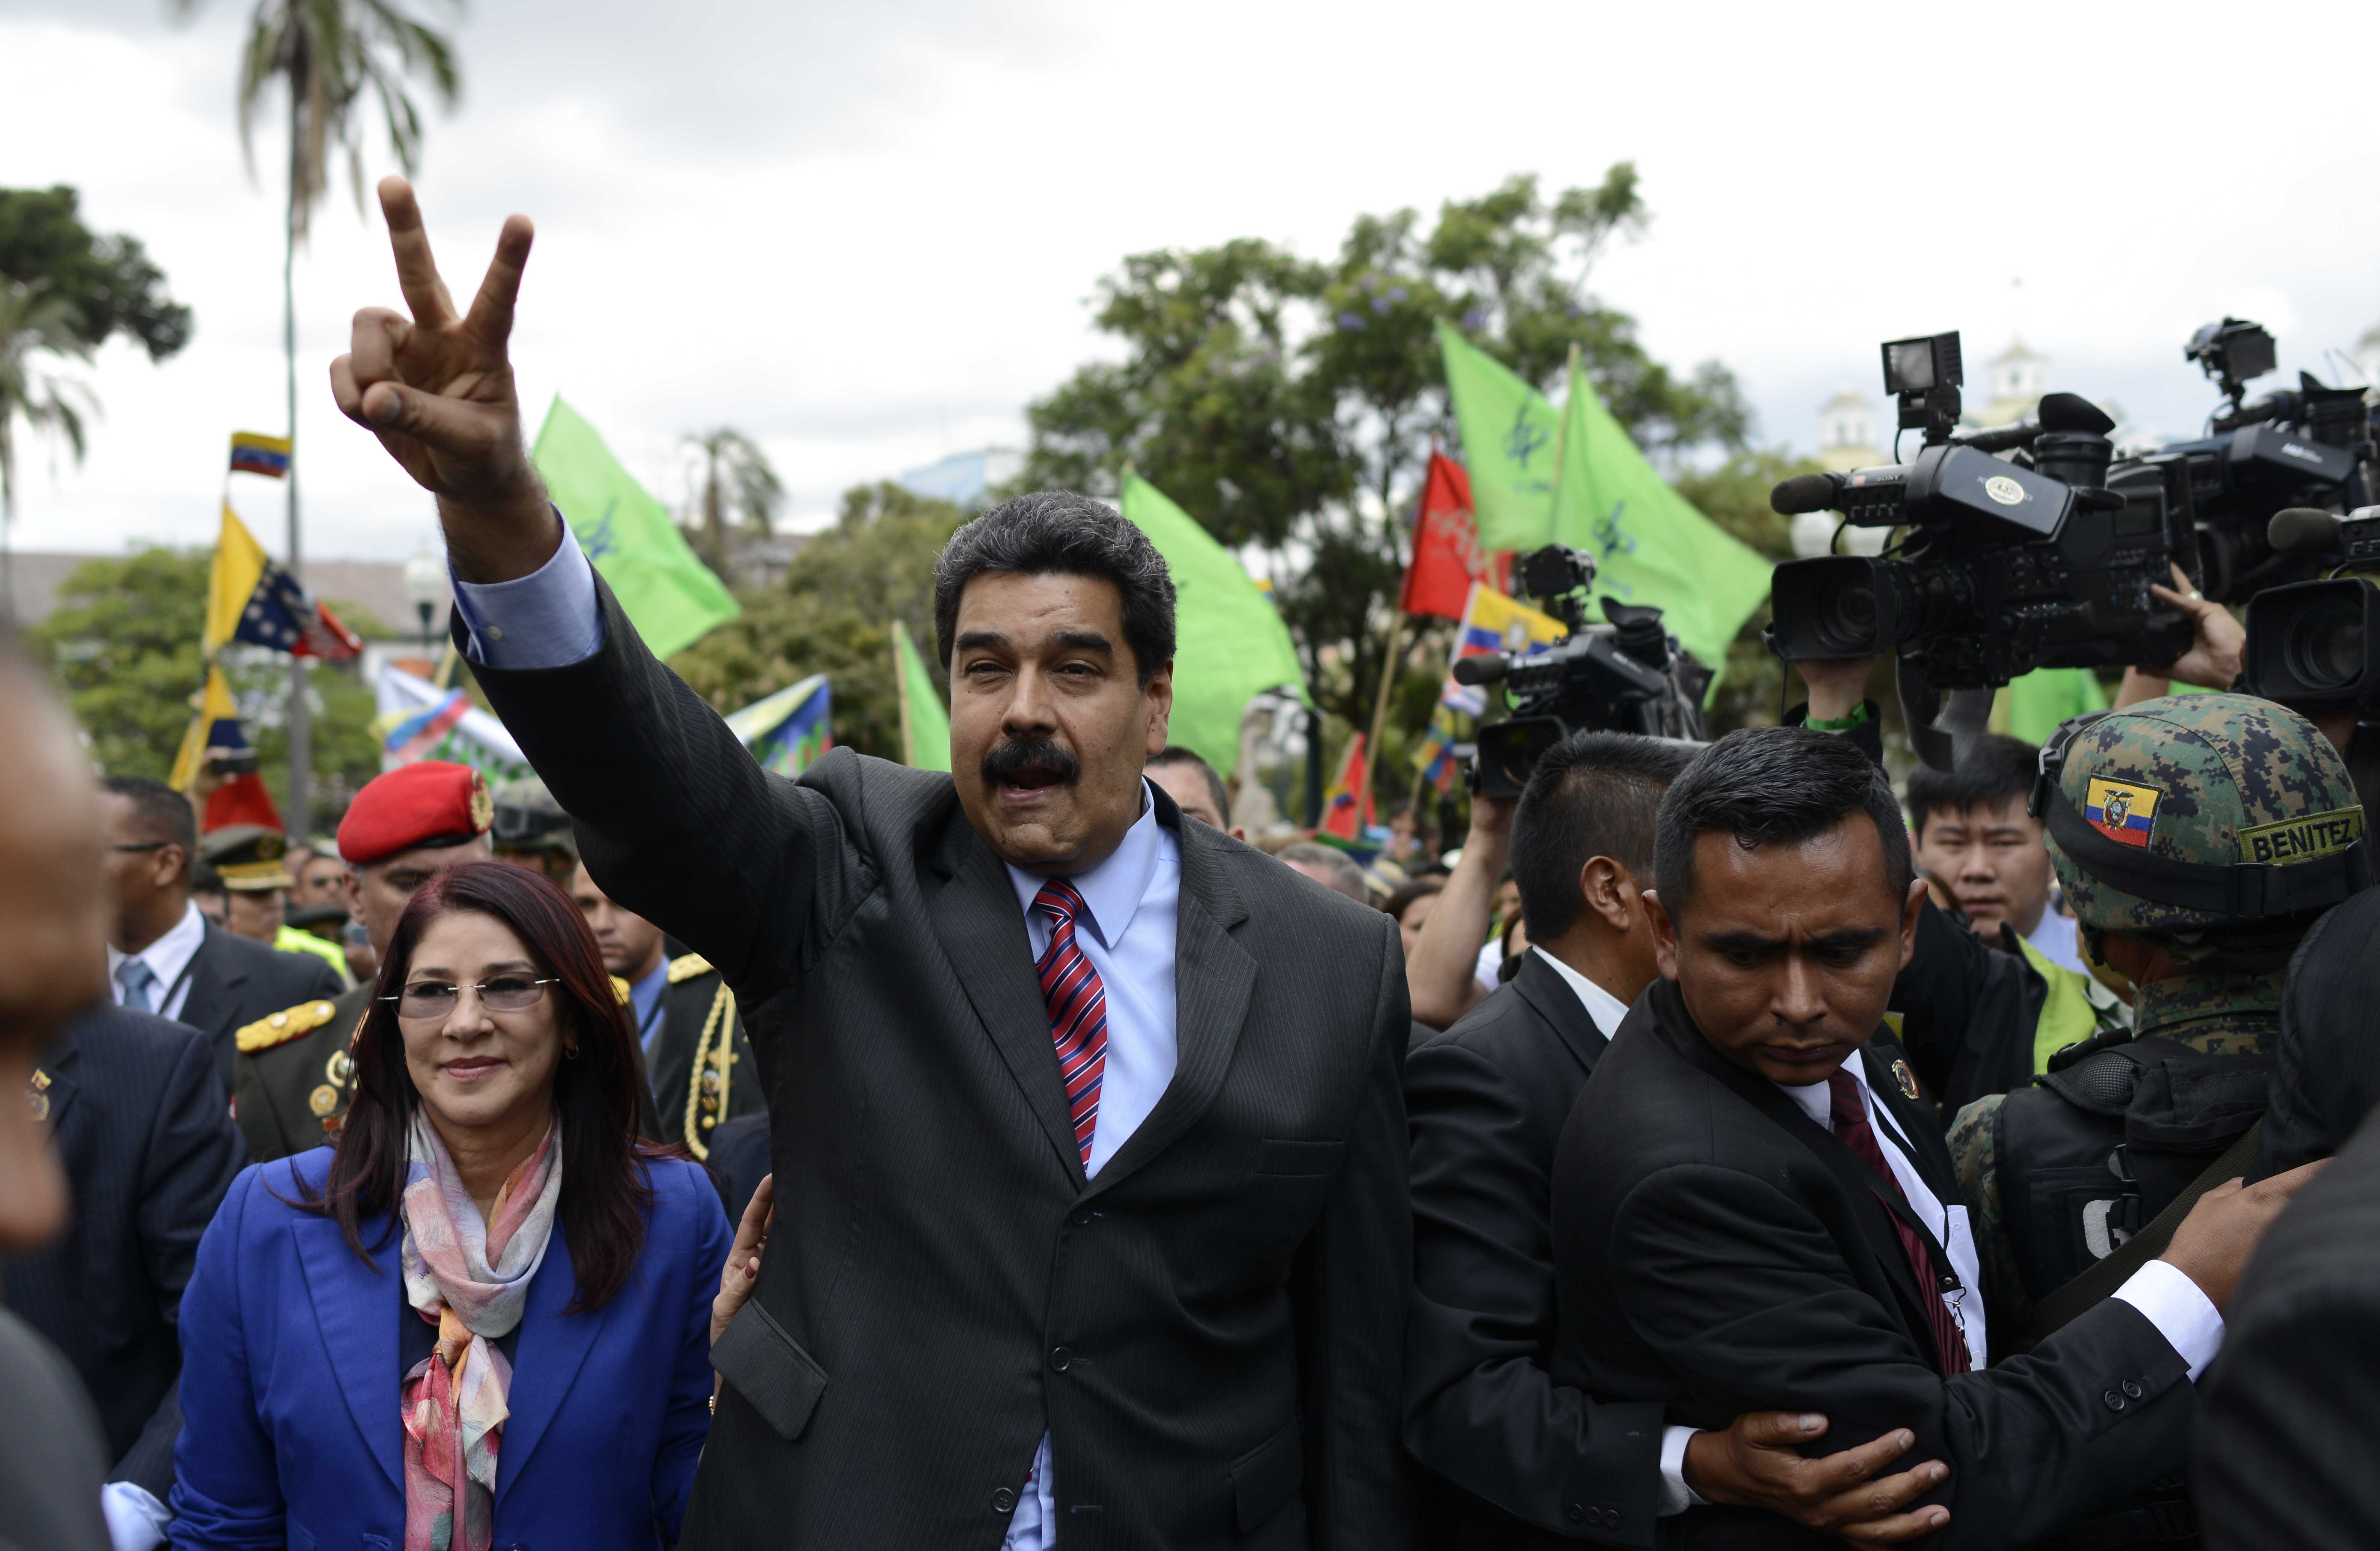 Venezuela's President Nicolas Maduro, accompanied by his first lady Cilia Flores, flashes a peace sign as he arrives at government palace, in Quito, Ecuador, Sept. 21, 2015.